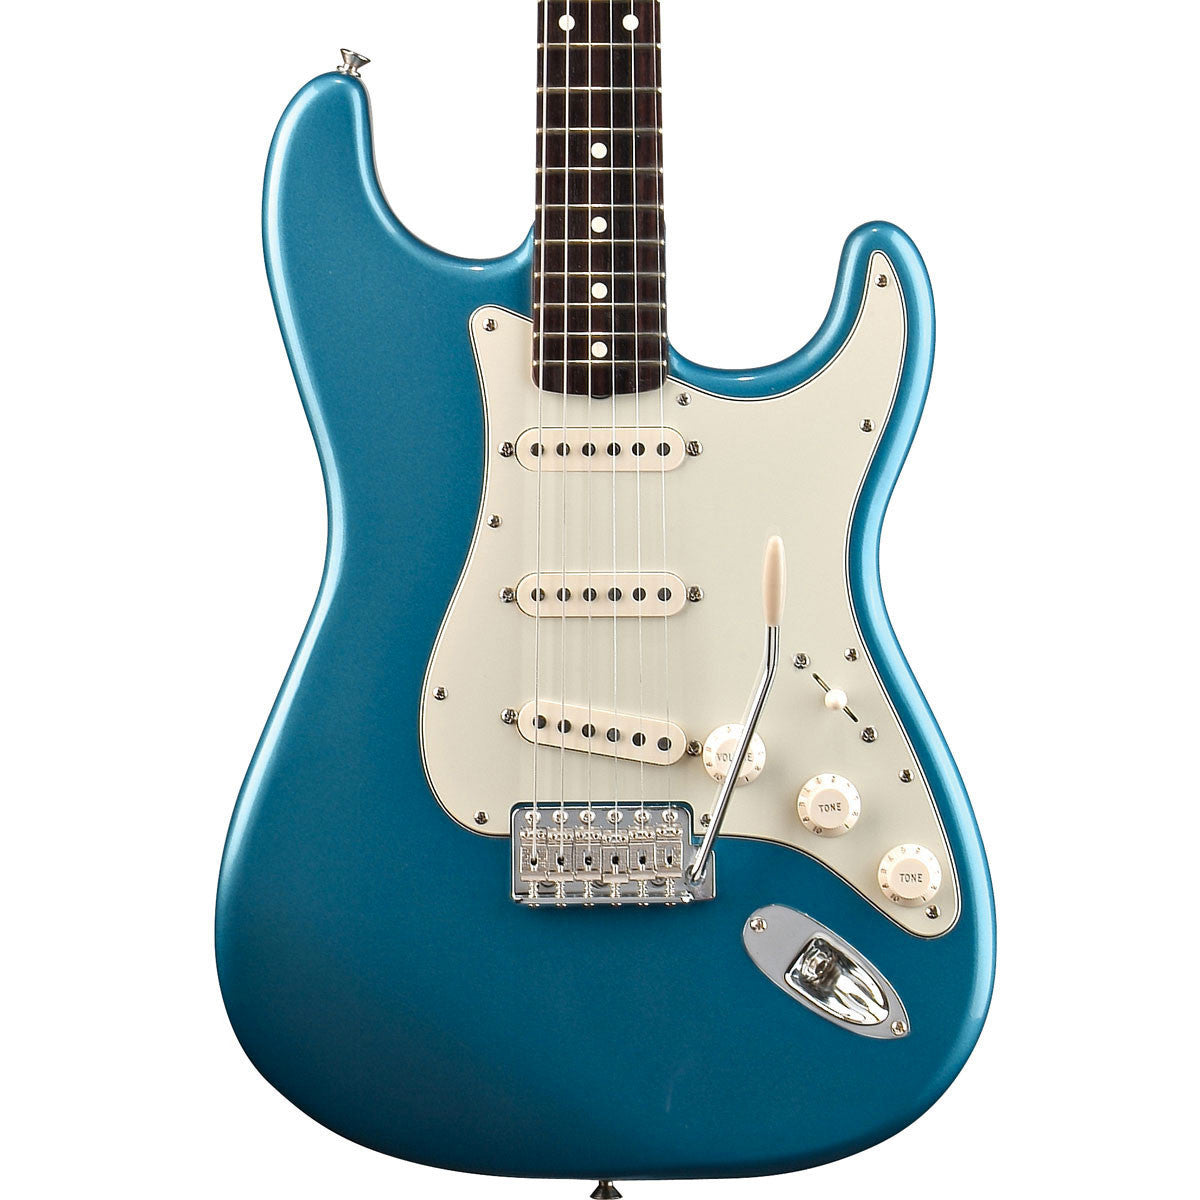 Fender Classic Series 60s Stratocaster - Rosewood - Lake Placid Blue - Vintage Guitar Boutique - 1